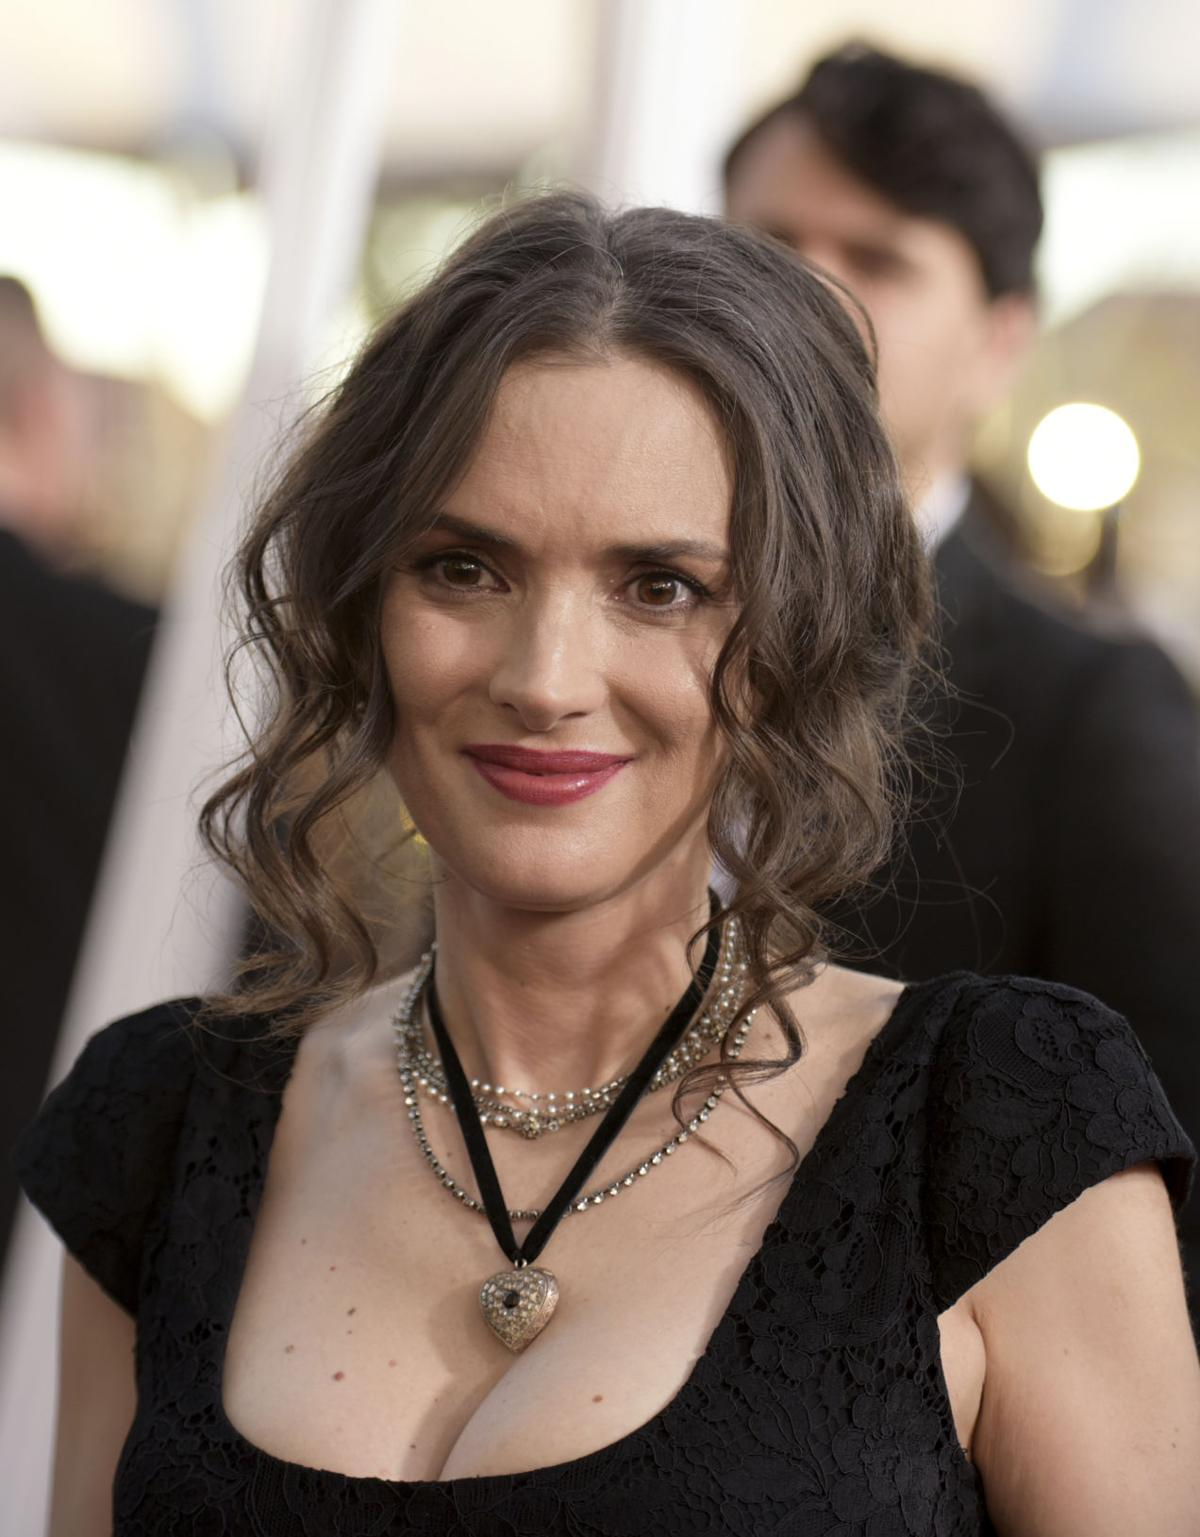 winona ryder - photo #45